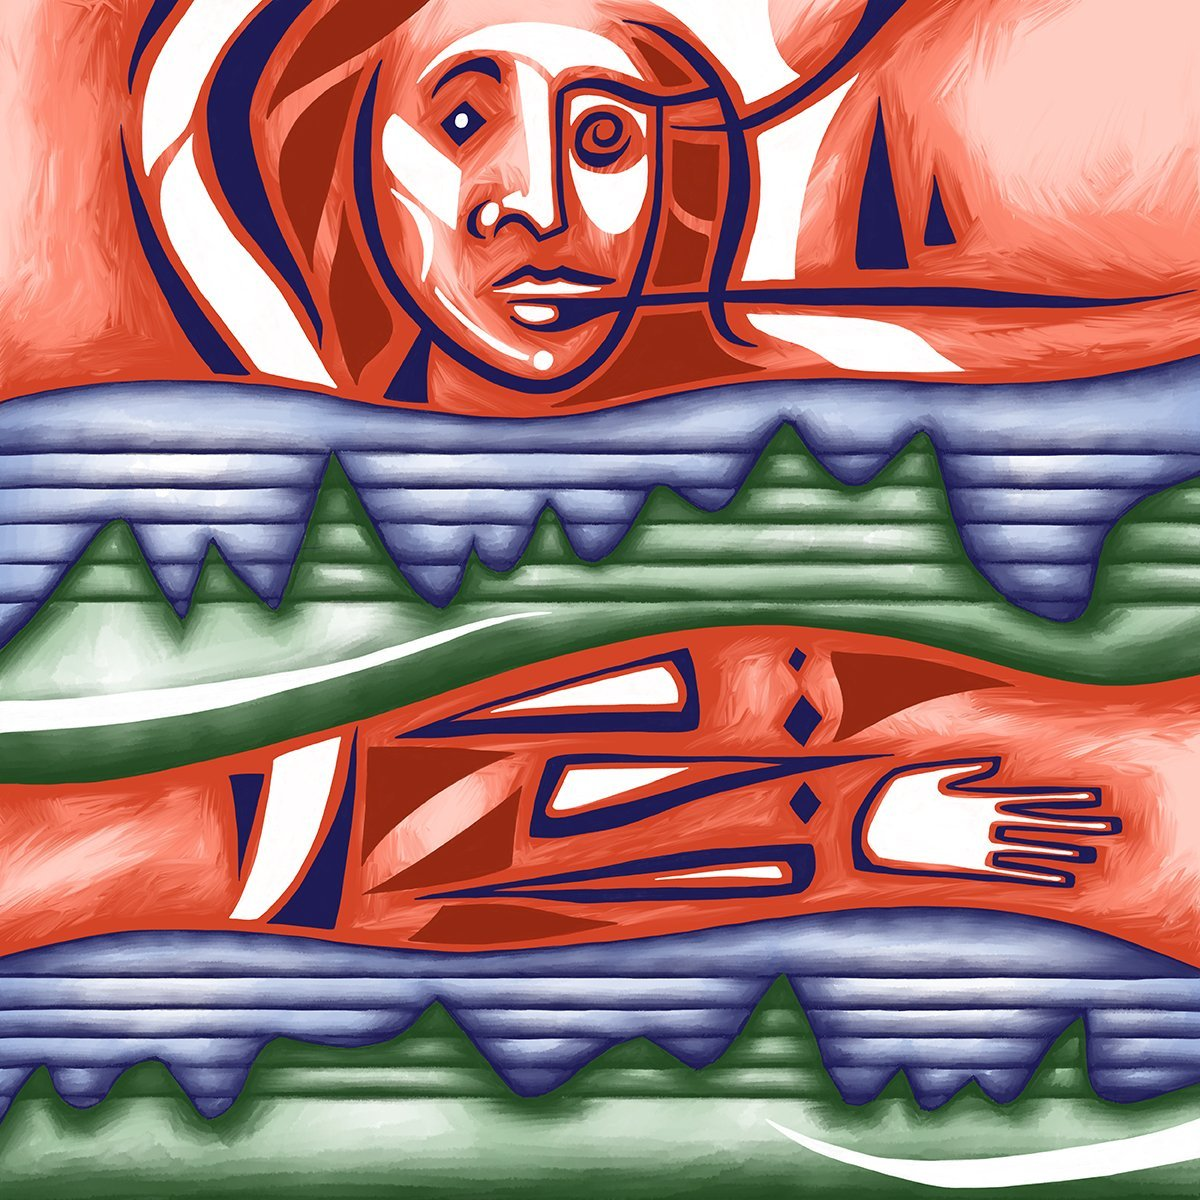 The image shows a piece of artwork by Jina Wallwork.It is a digital drawing of a person. Stylistically this piece of artwork has links with expressionism.